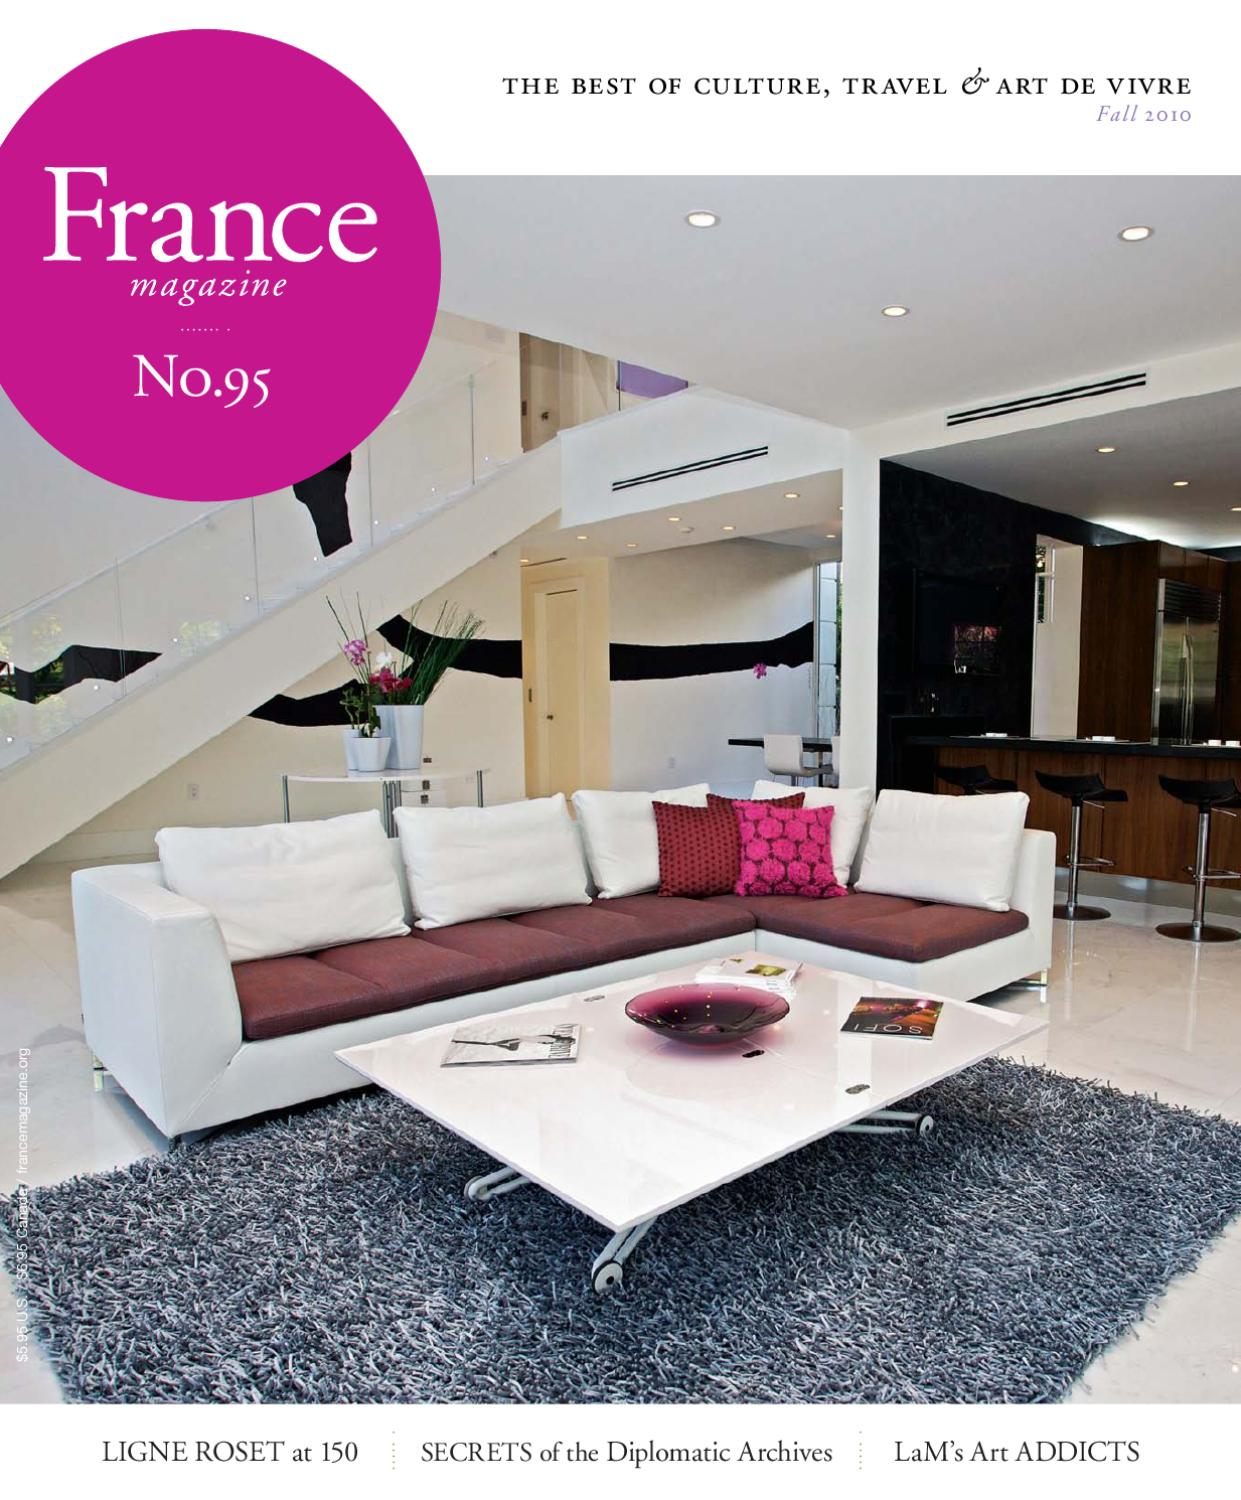 Mobilier De Veranda Design Génial France Magazine 95 Fall 2010 by France Magazine issuu Of 28 Frais Mobilier De Veranda Design